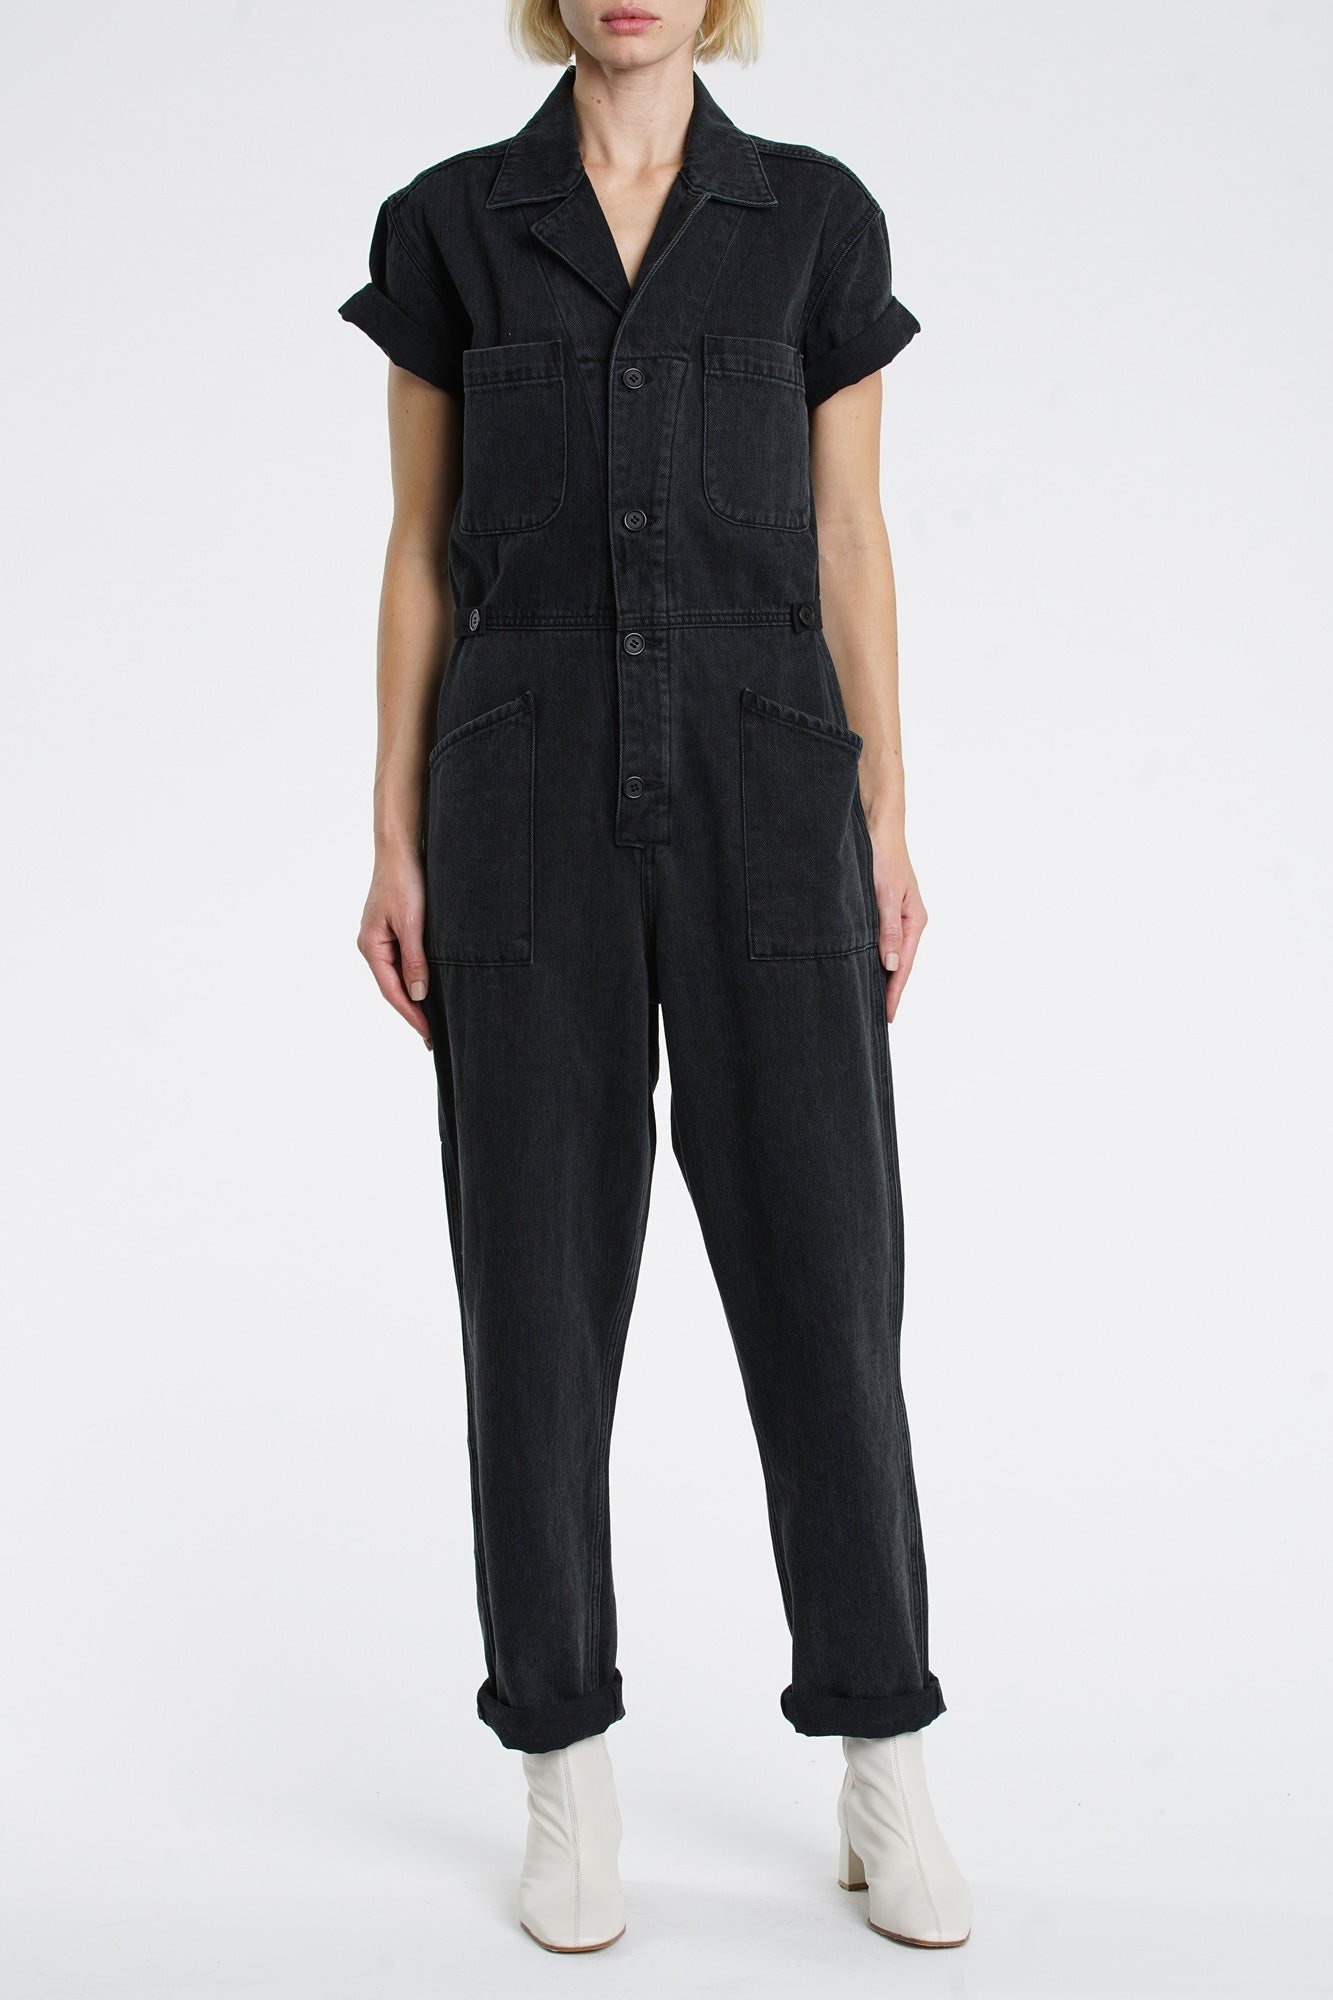 Grover Short Sleeve Field Suit - Asphalt Tiger